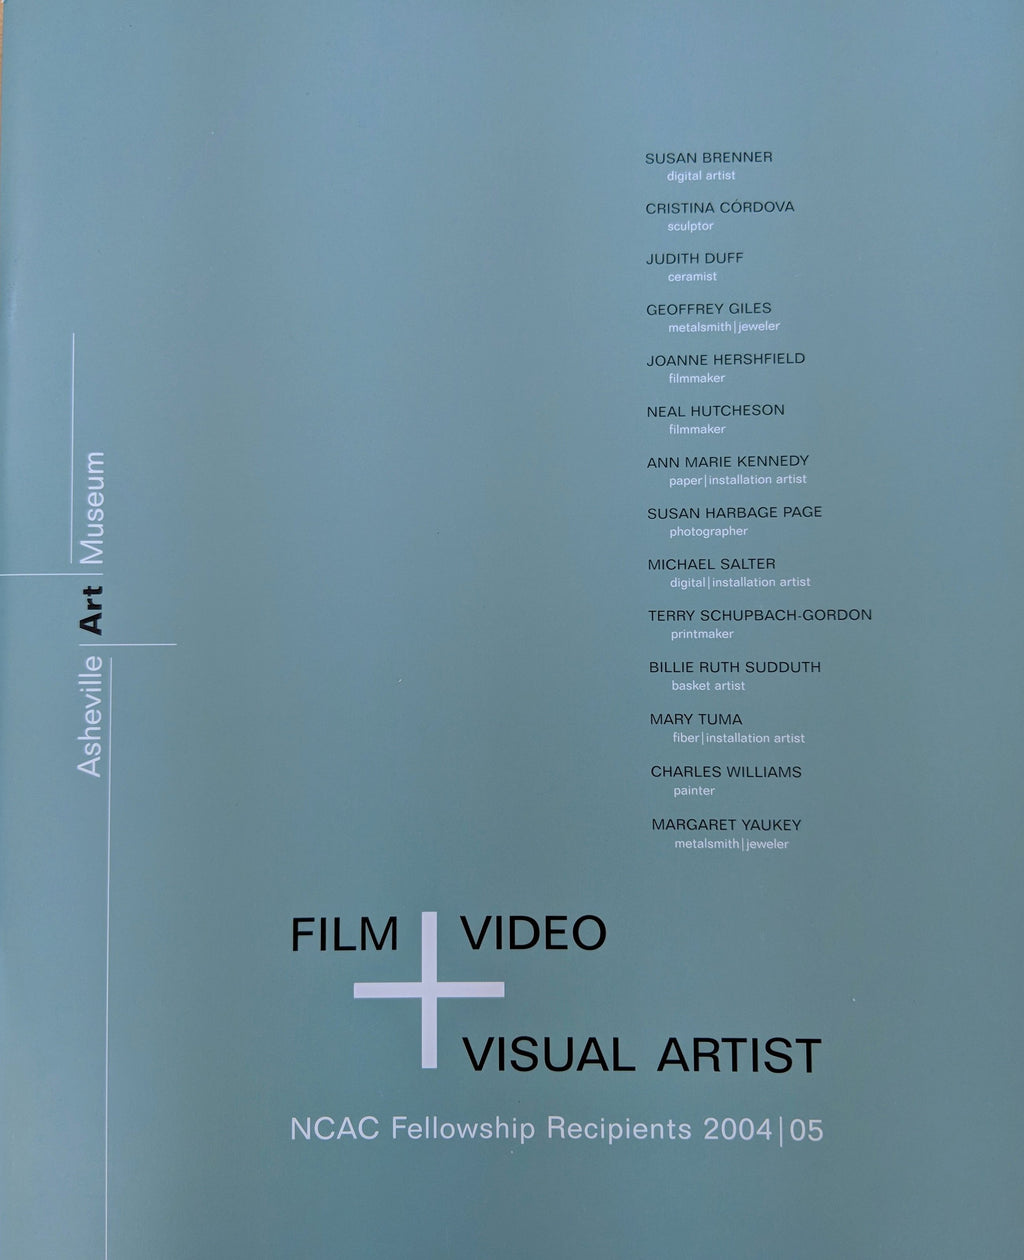 Film Video Visual Artist: NCAC Fellowship Recipients 2004/05